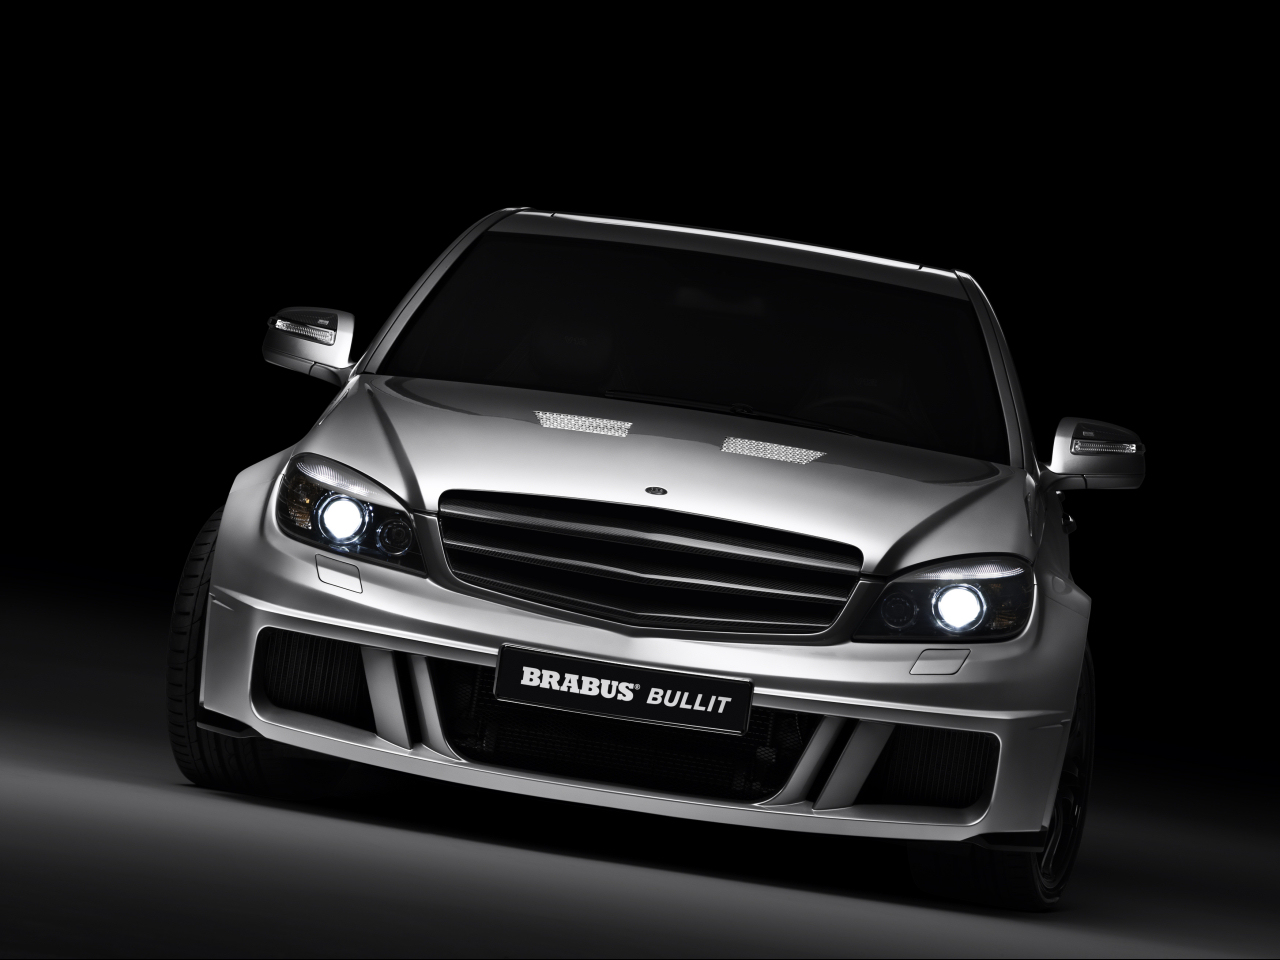 Brabus Bullit based on the Mercedes-Benz C-class